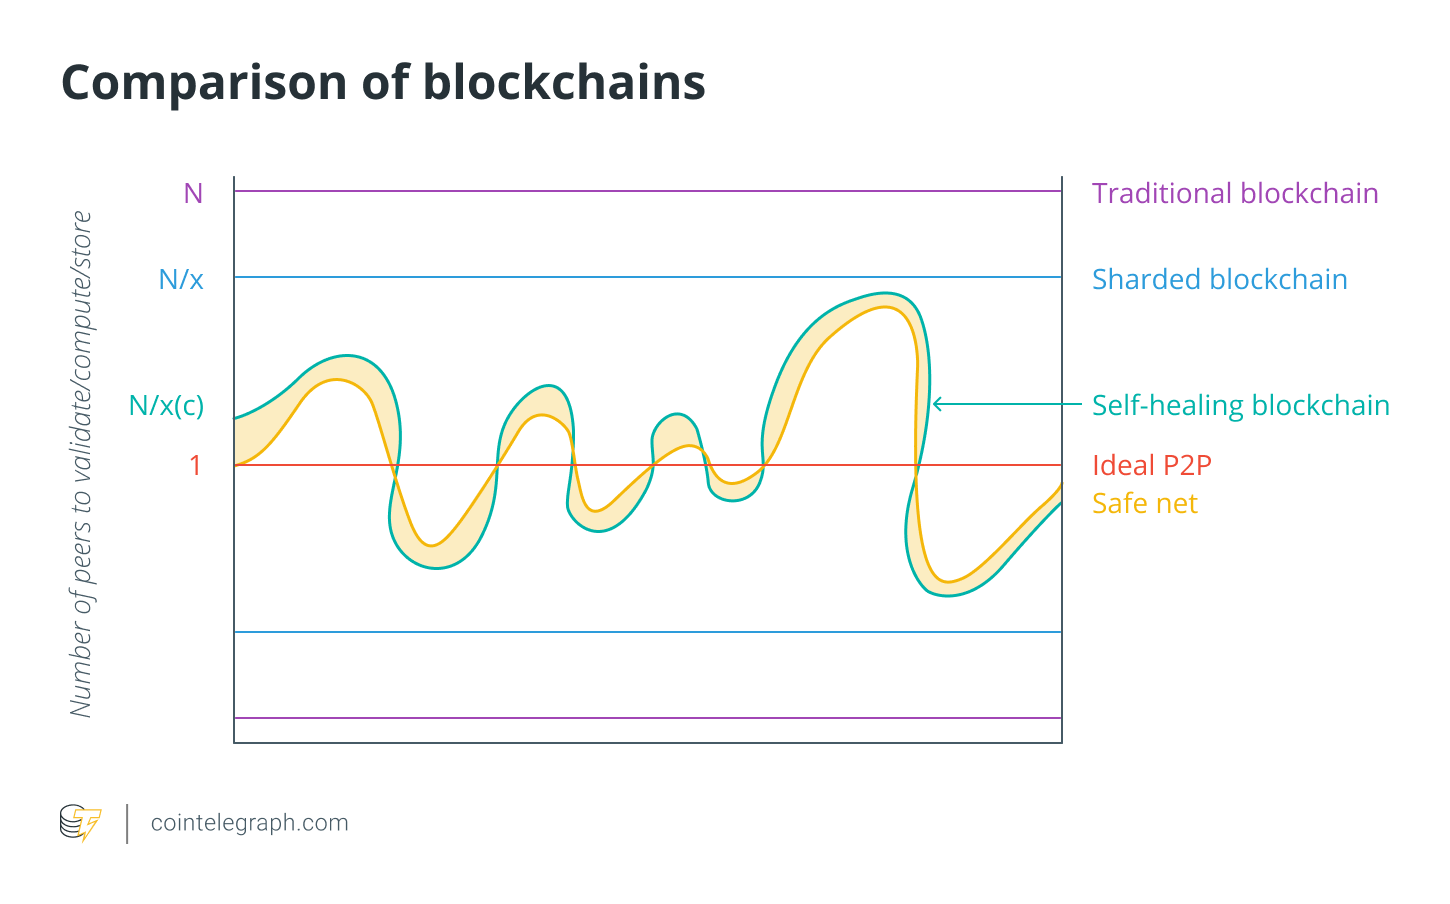 Comparison of blockchains